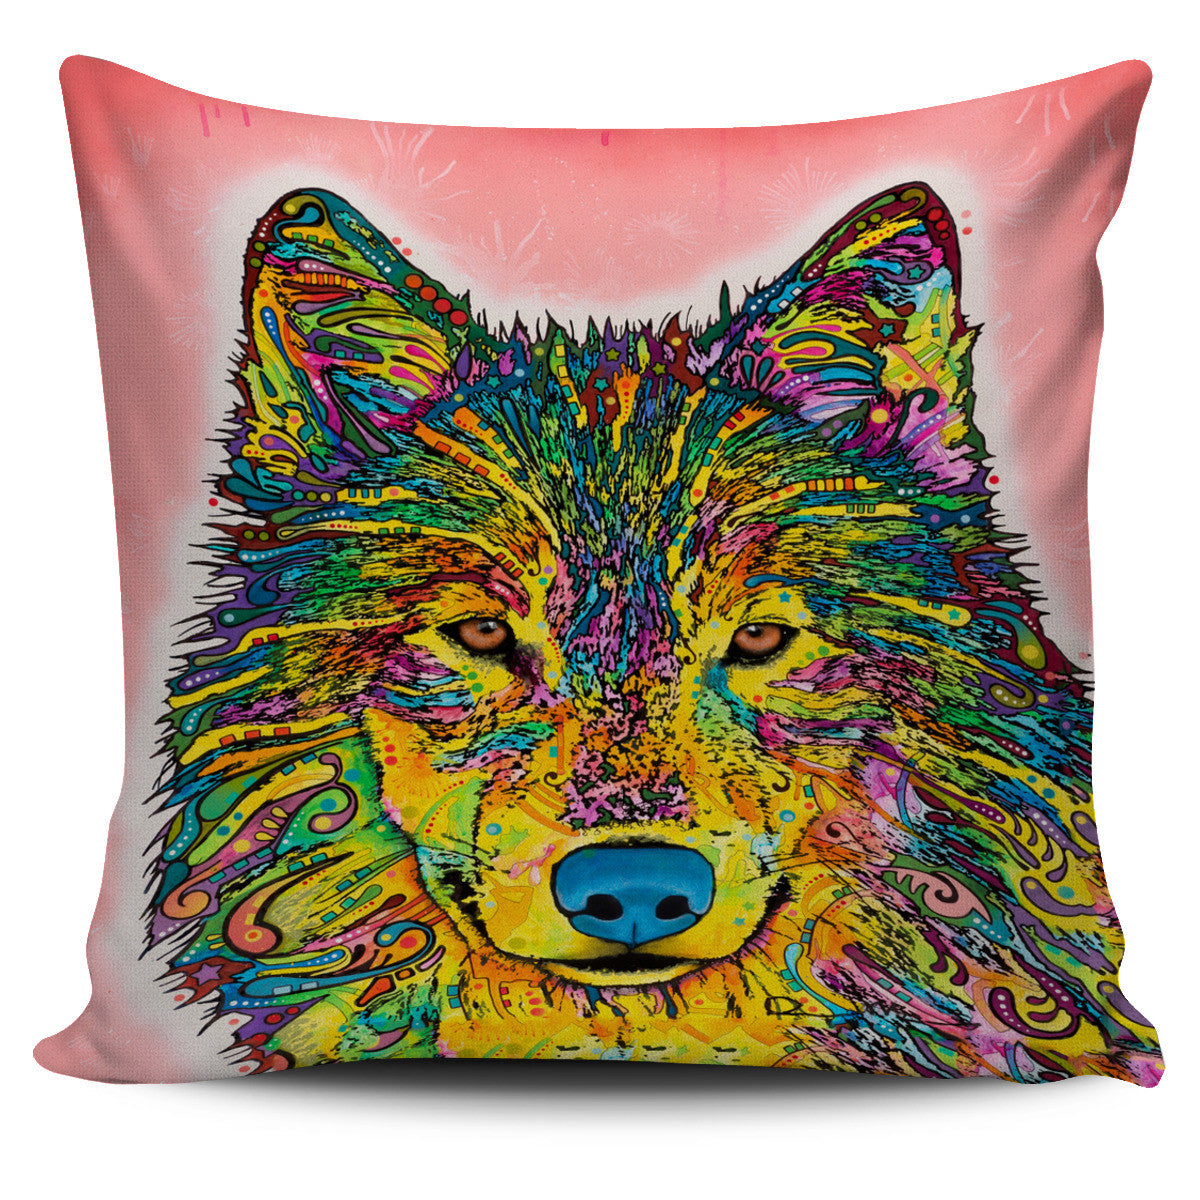 North America Series Pillow Covers Offer